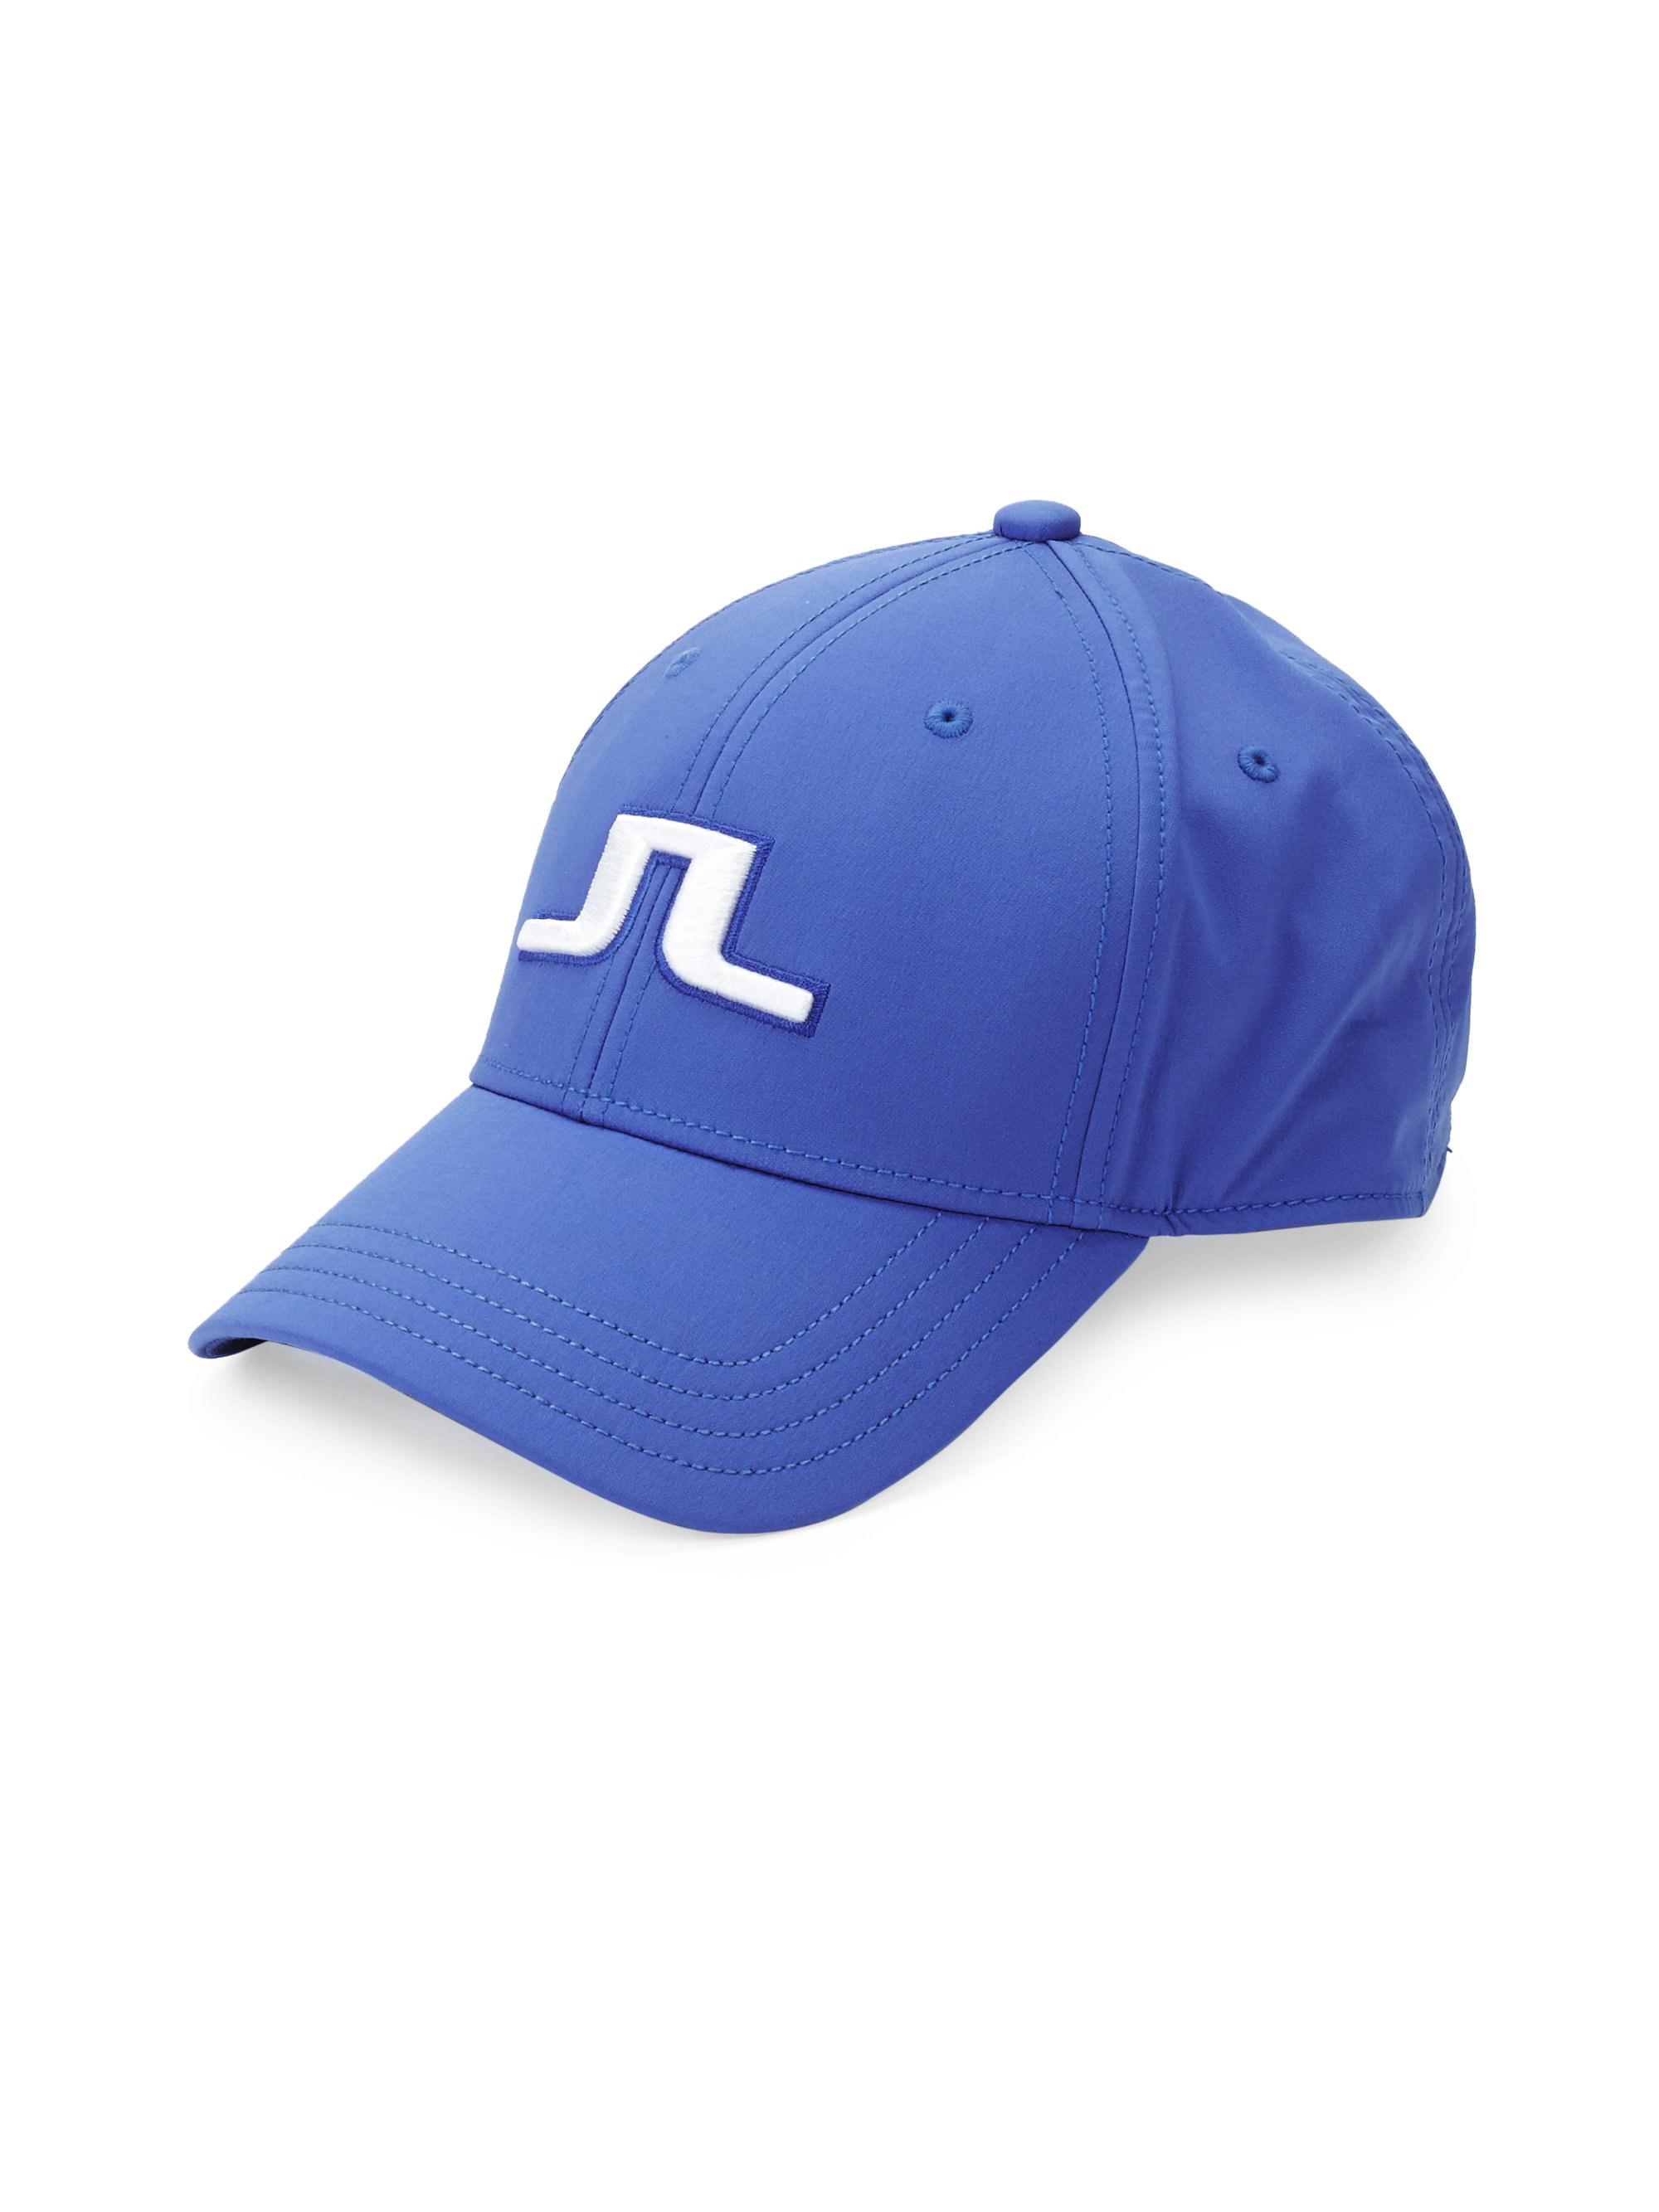 524e98eb824 Lyst - J.Lindeberg Golf Angus Tech Stretch Baseball Cap in Blue for Men